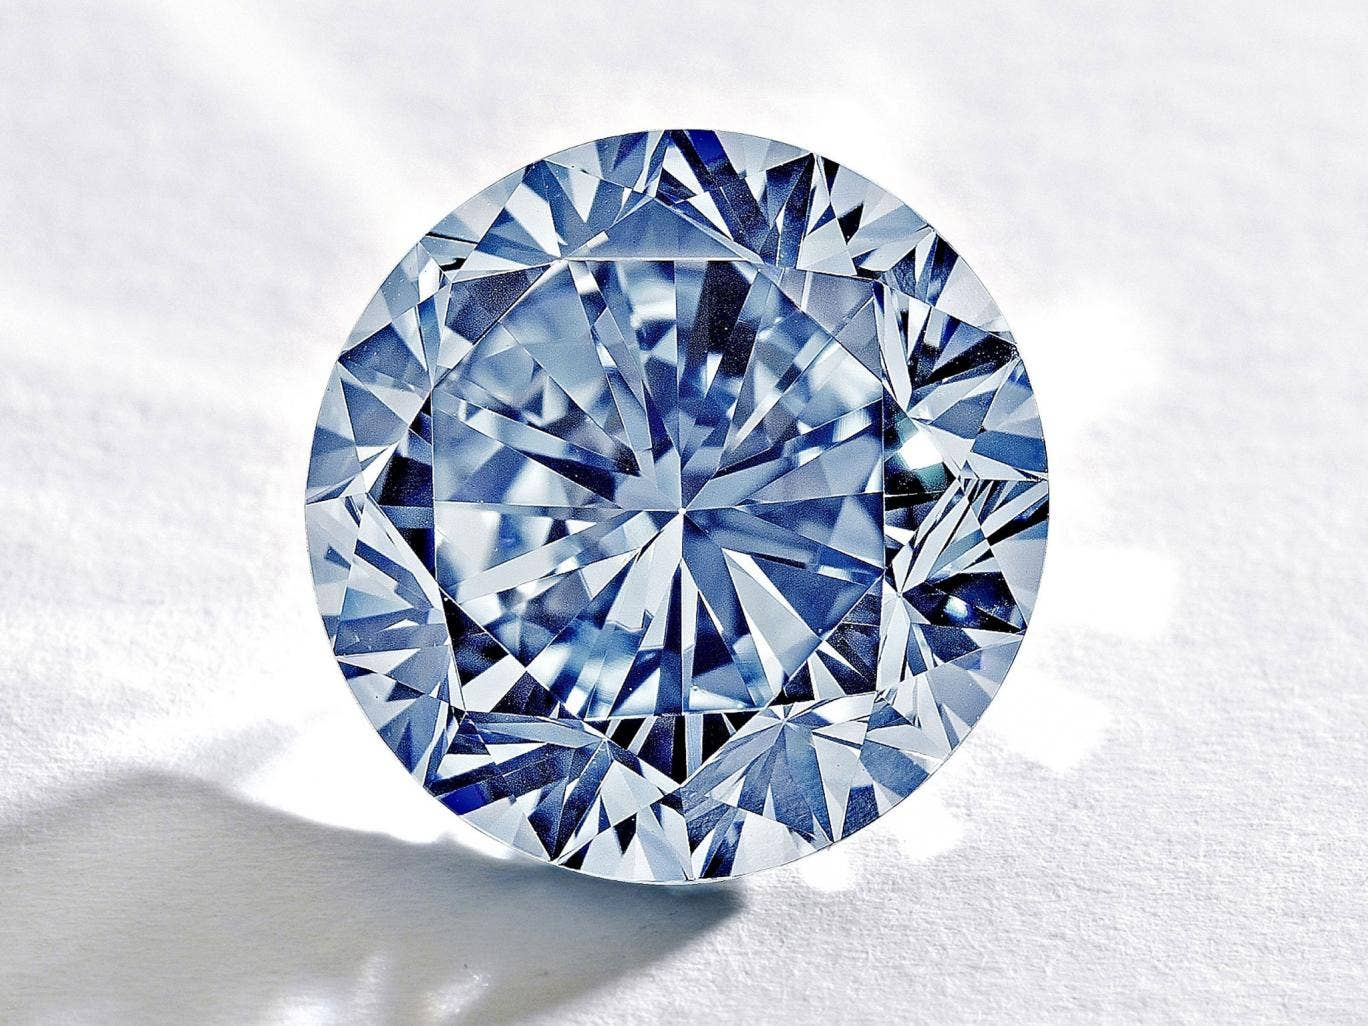 The rare round blue diamond will go under the hammer in Hong Kong in October